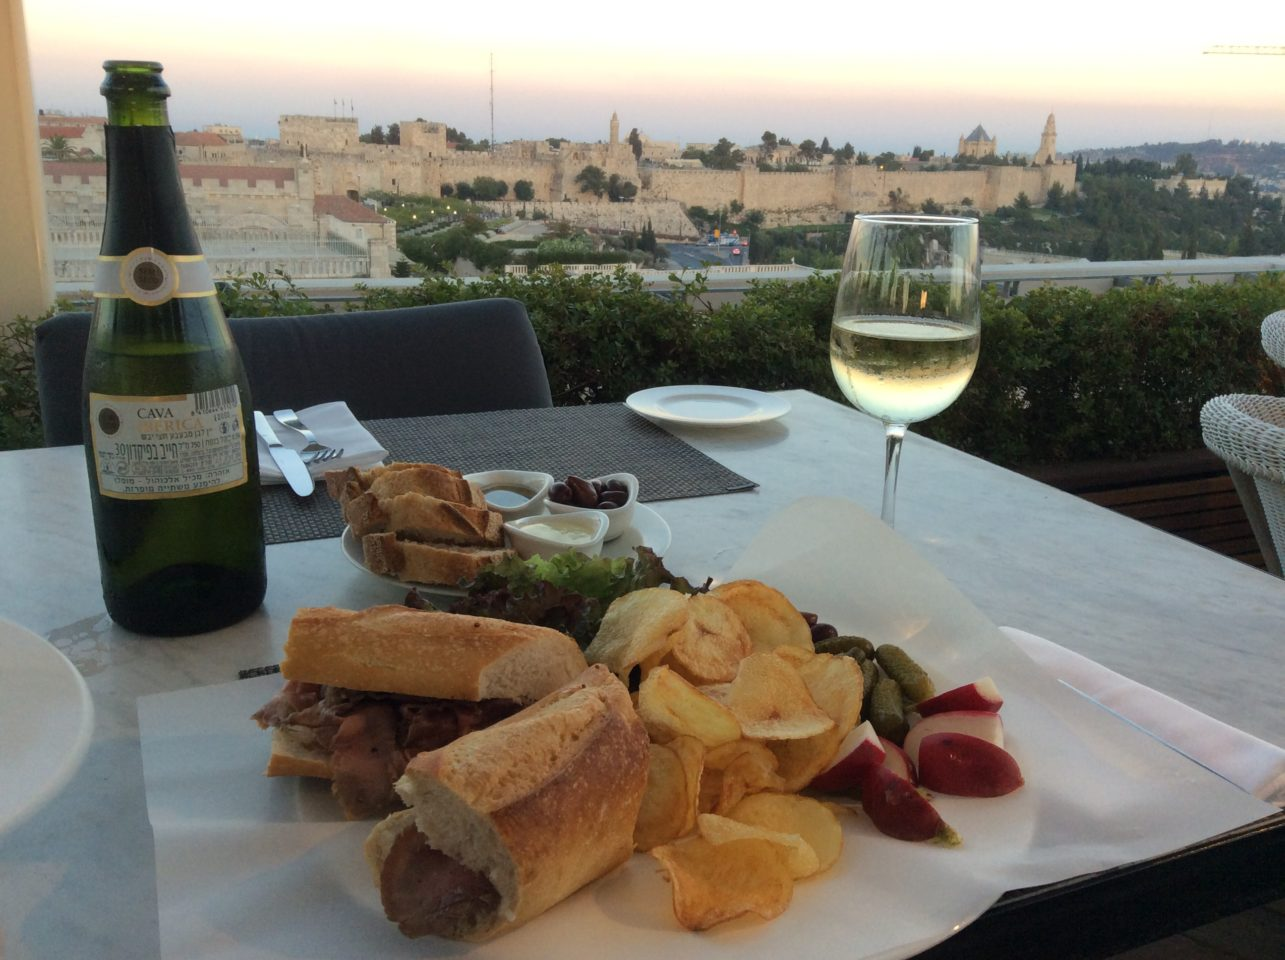 Vacationing in Israel ... Old City of Jerusalem viewed from rooftop bar and restaurant of the Mamilla Hotel